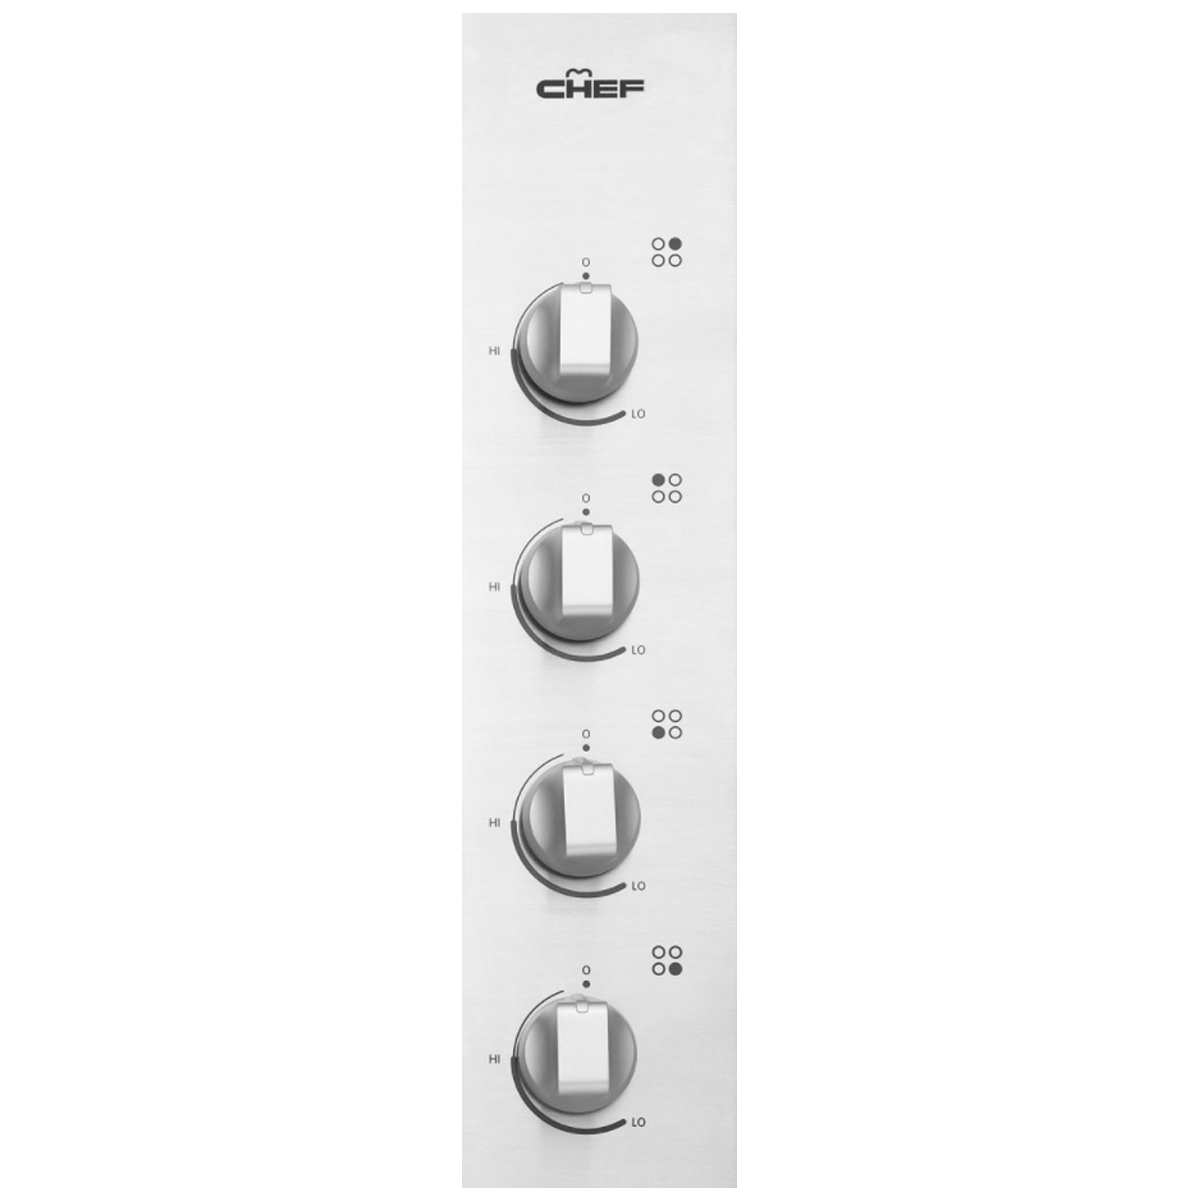 Chef GHC617S Gas Cooktop 145601